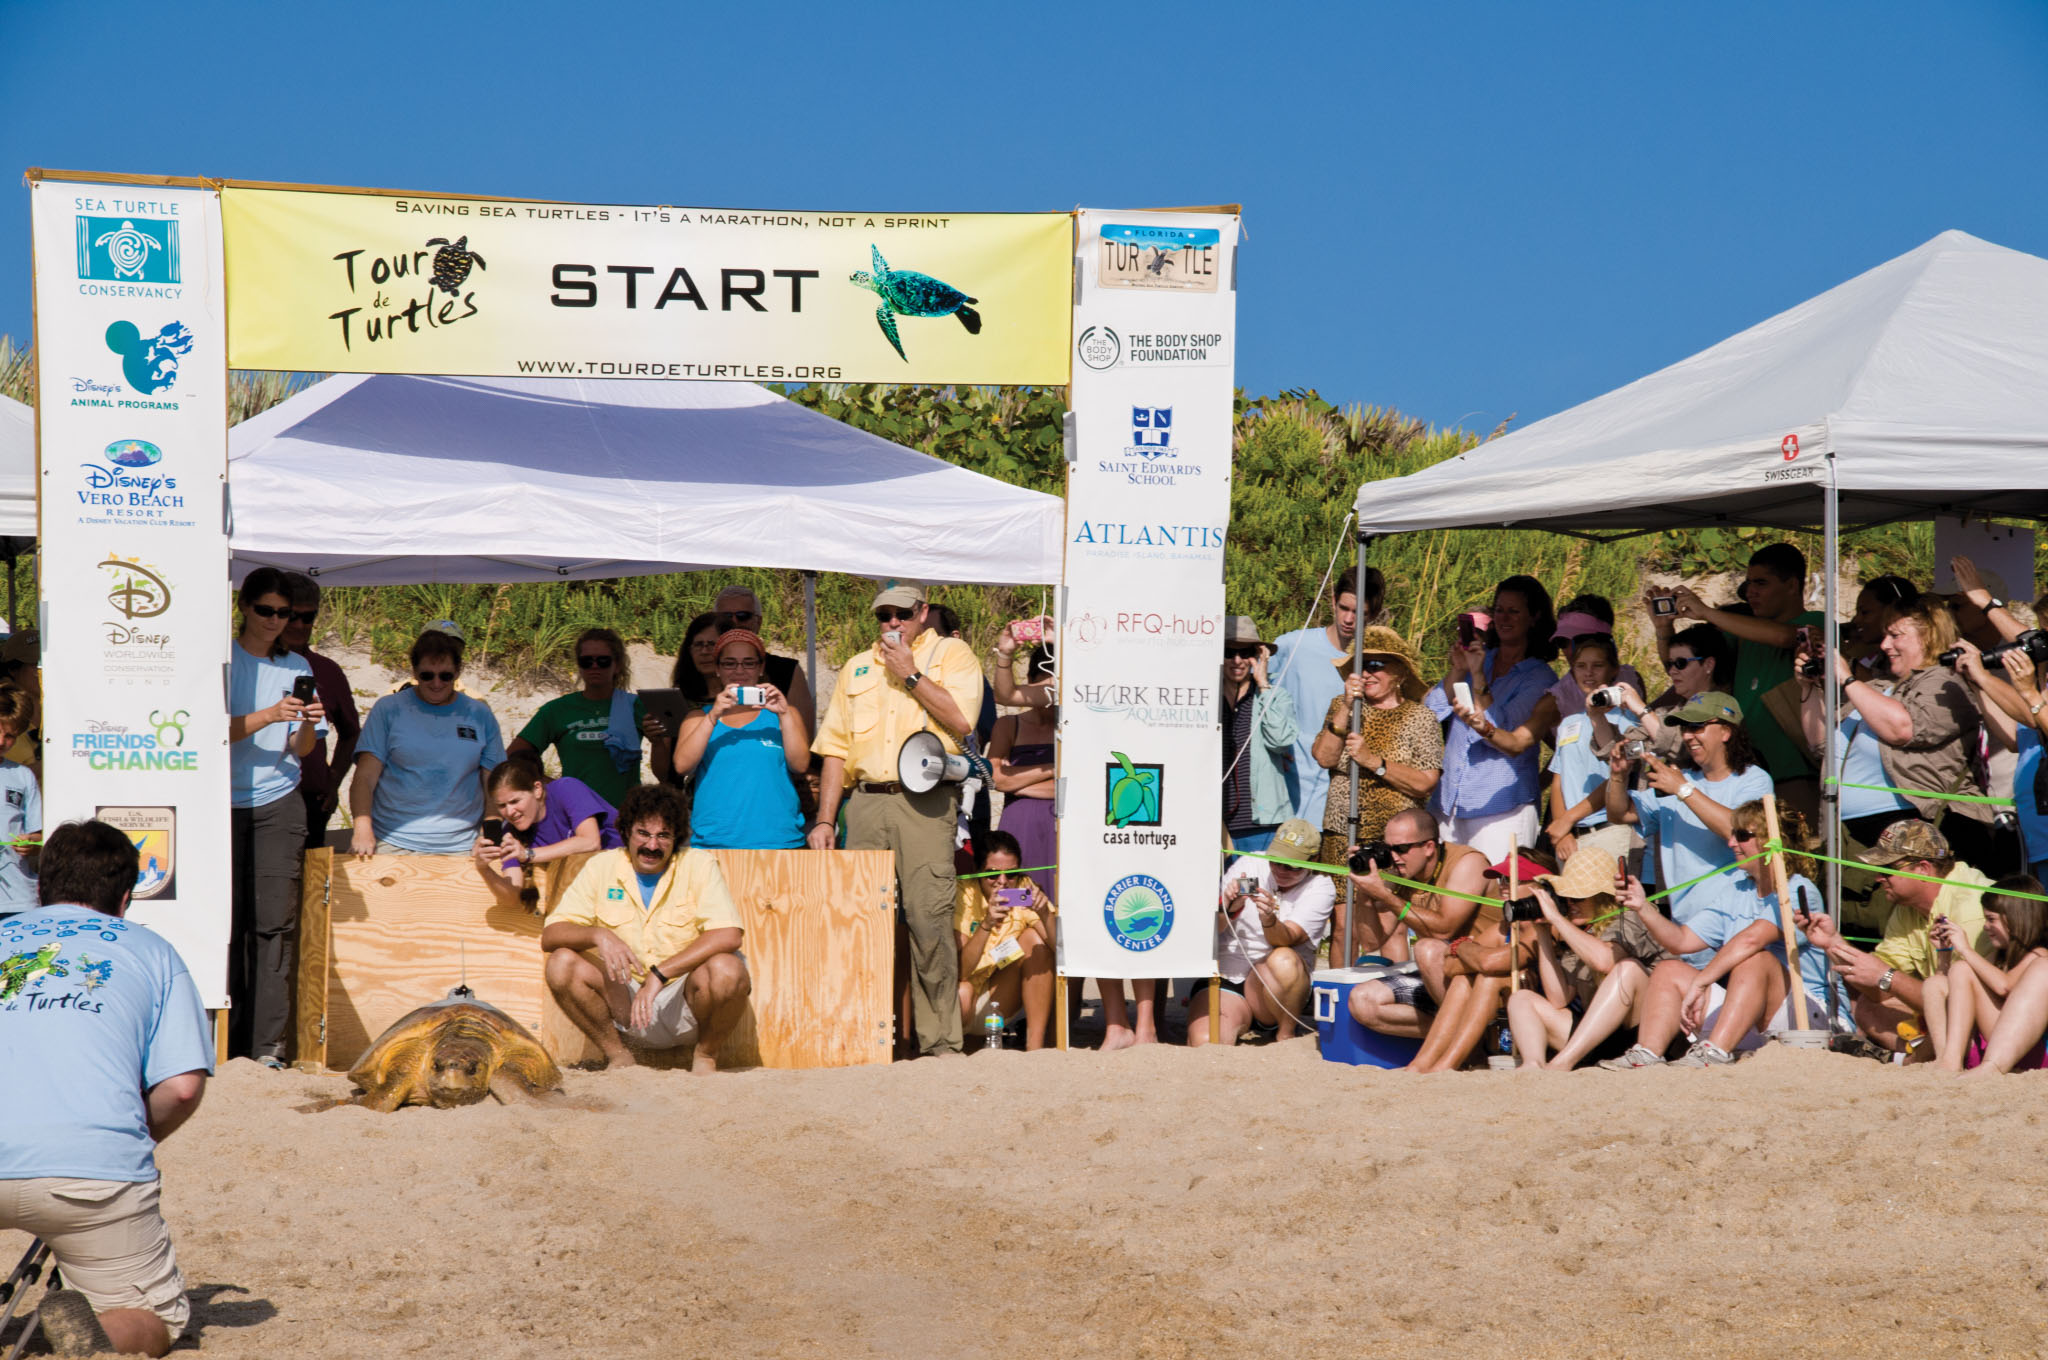 Spectators and corporate sponsors gather at the starting line of Sea Turtle Conservancy's Tour de Turtles. The campaign recruited corporate turtle sponsors to fund satellite tracking research and to generate public awareness for conservation. © Sea Turtle Conservancy